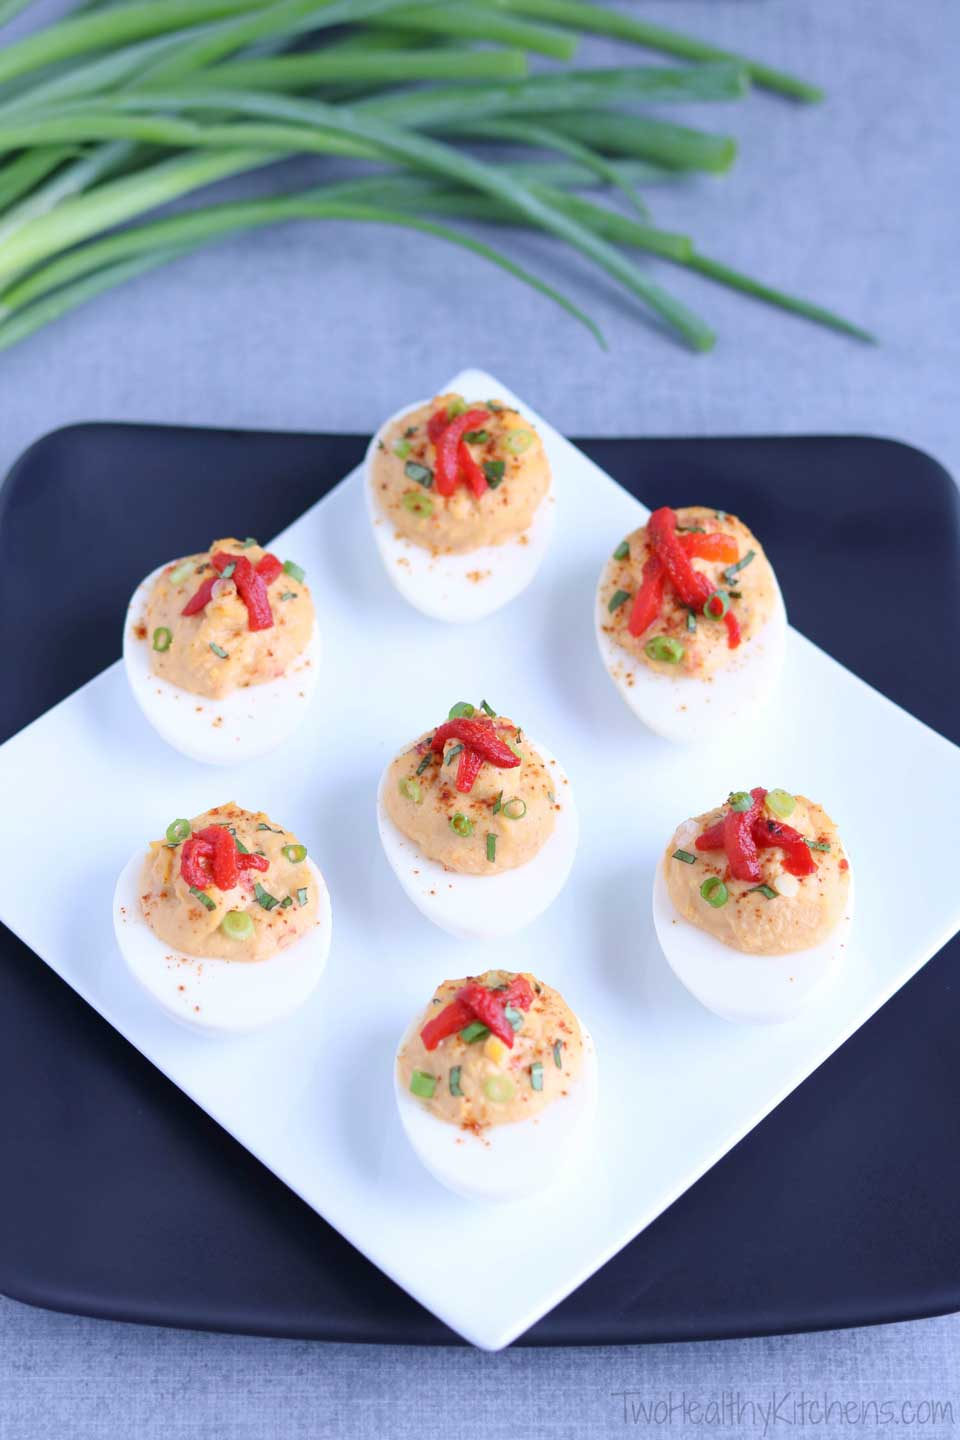 An easy, protein-packed, make-ahead! This Mediterranean Hummus Deviled Egg recipe features creamy roasted red pepper hummus and fresh basil. Fast enough for last-minute picnics and tailgates, yet stunning enough for fancy hors d'oeuvres parties!